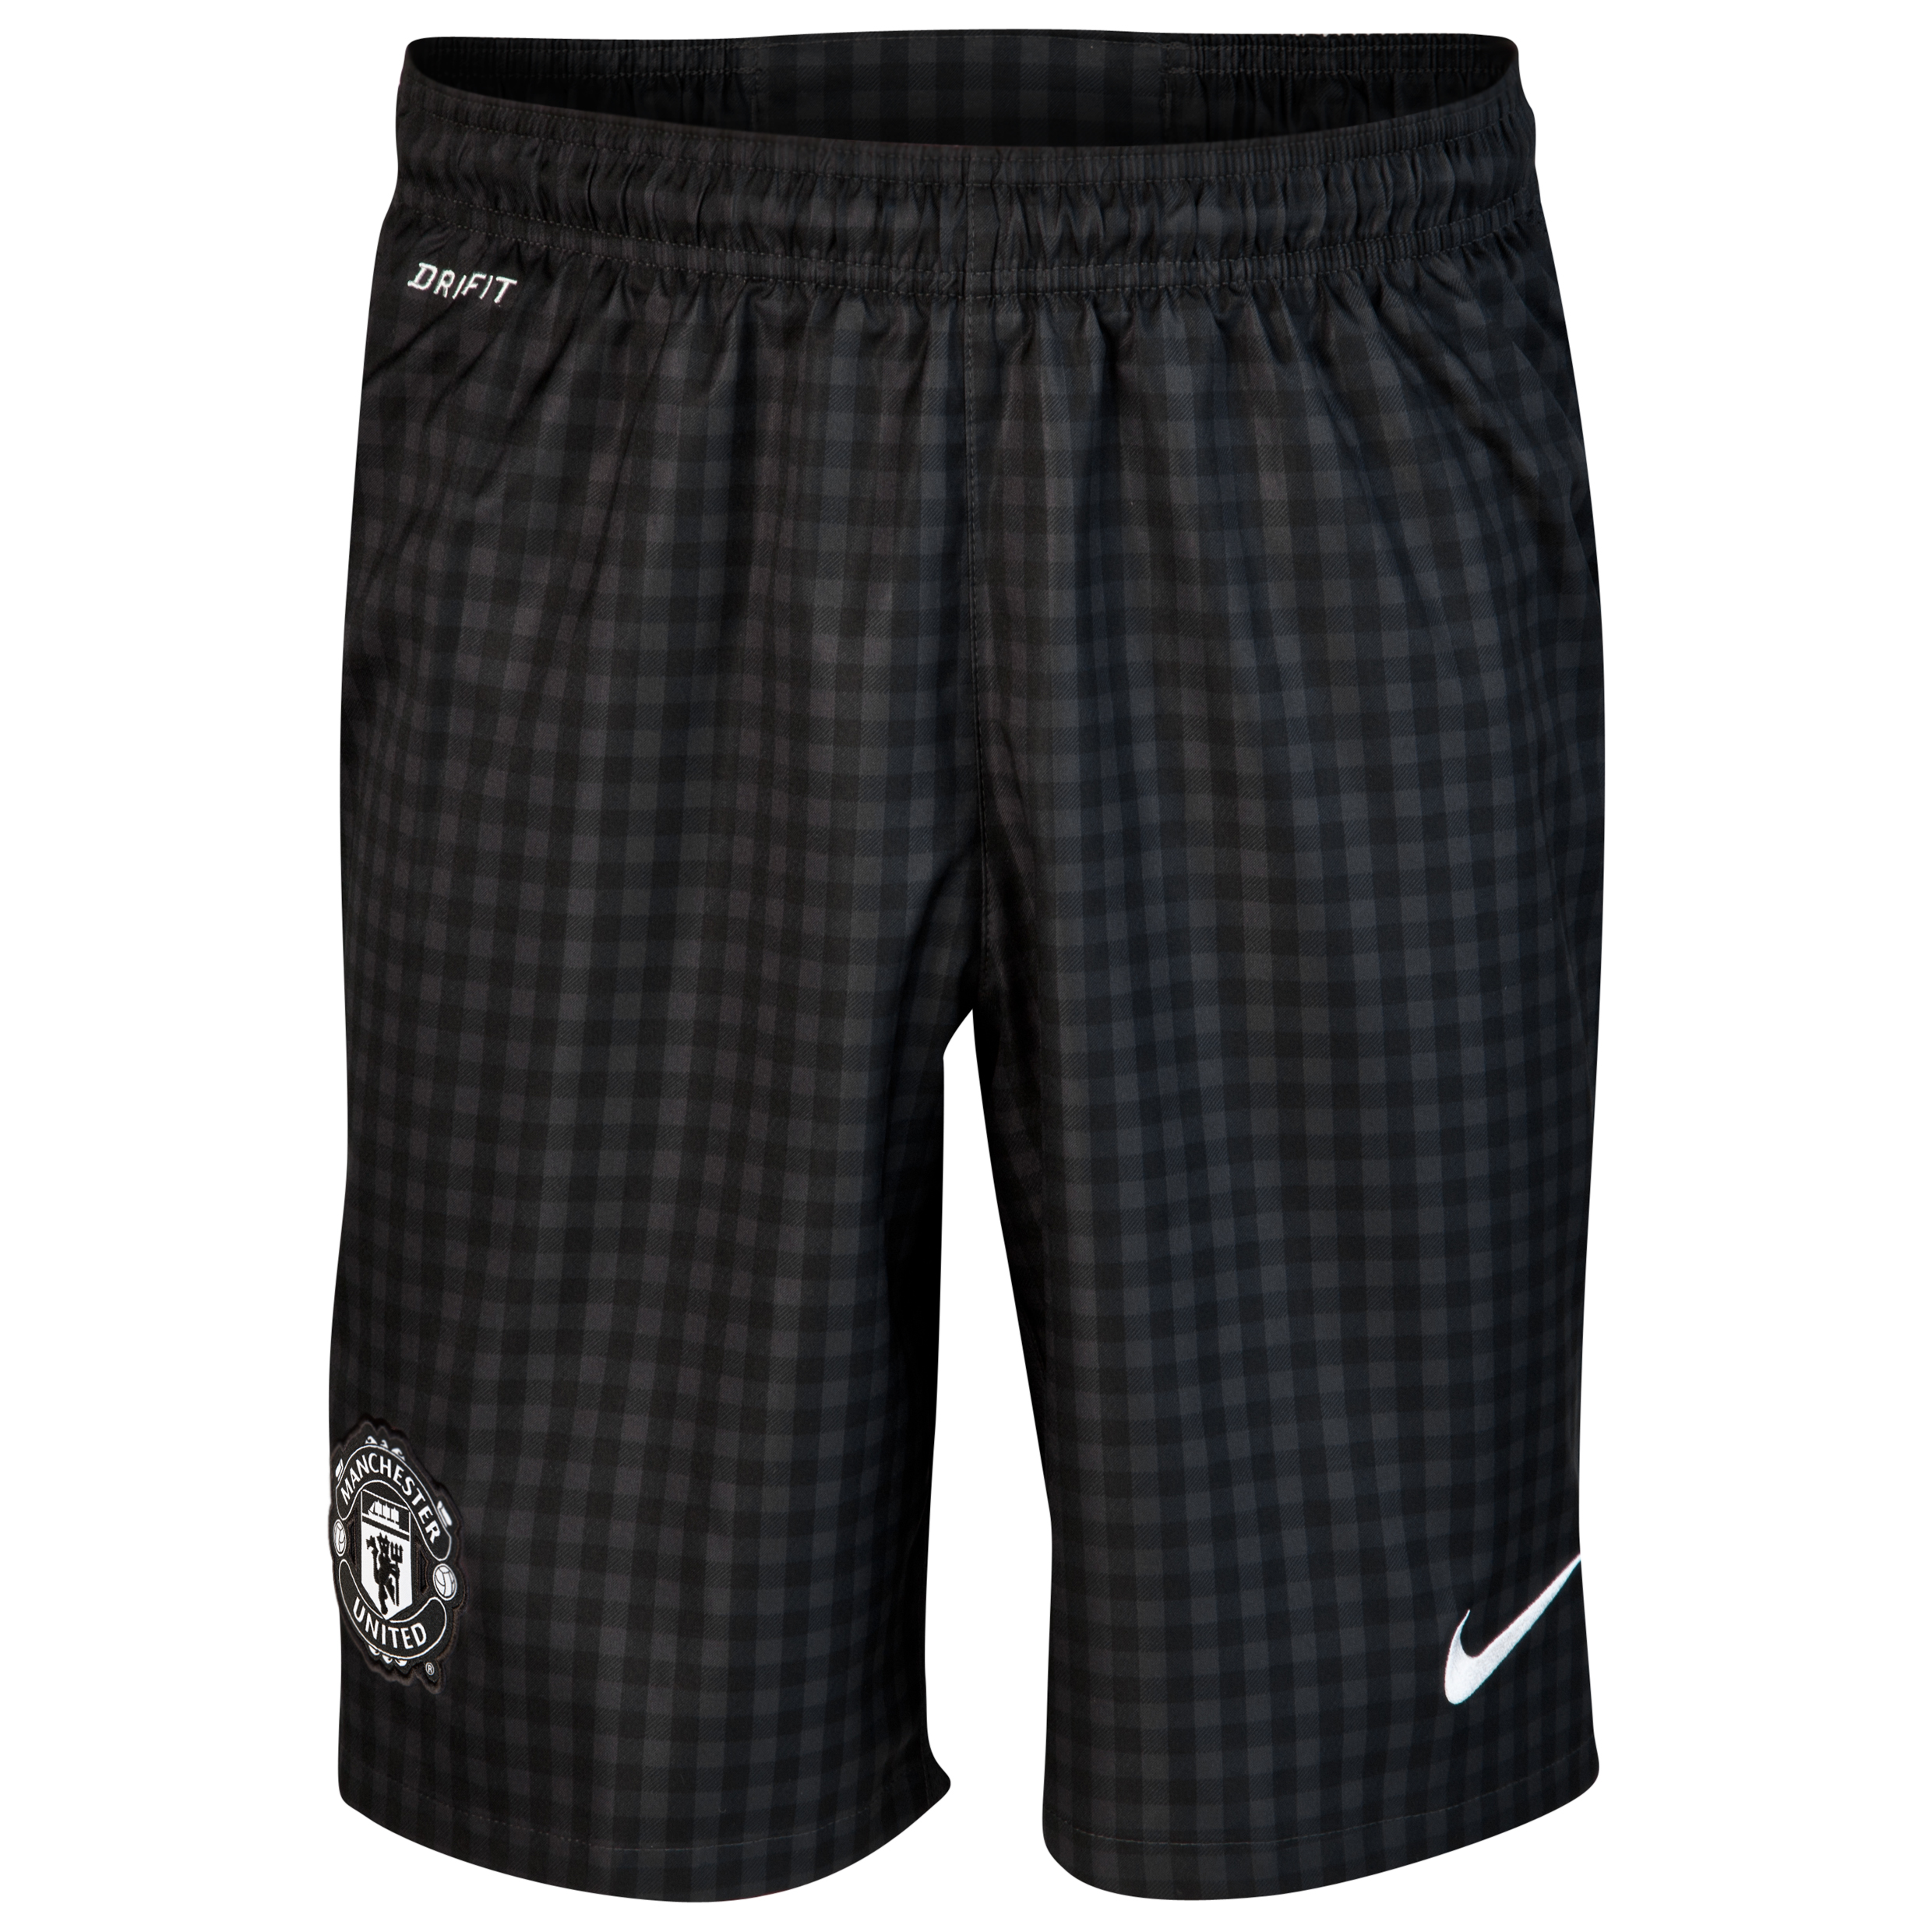 Manchester United Away Short 2012/13 - Youths